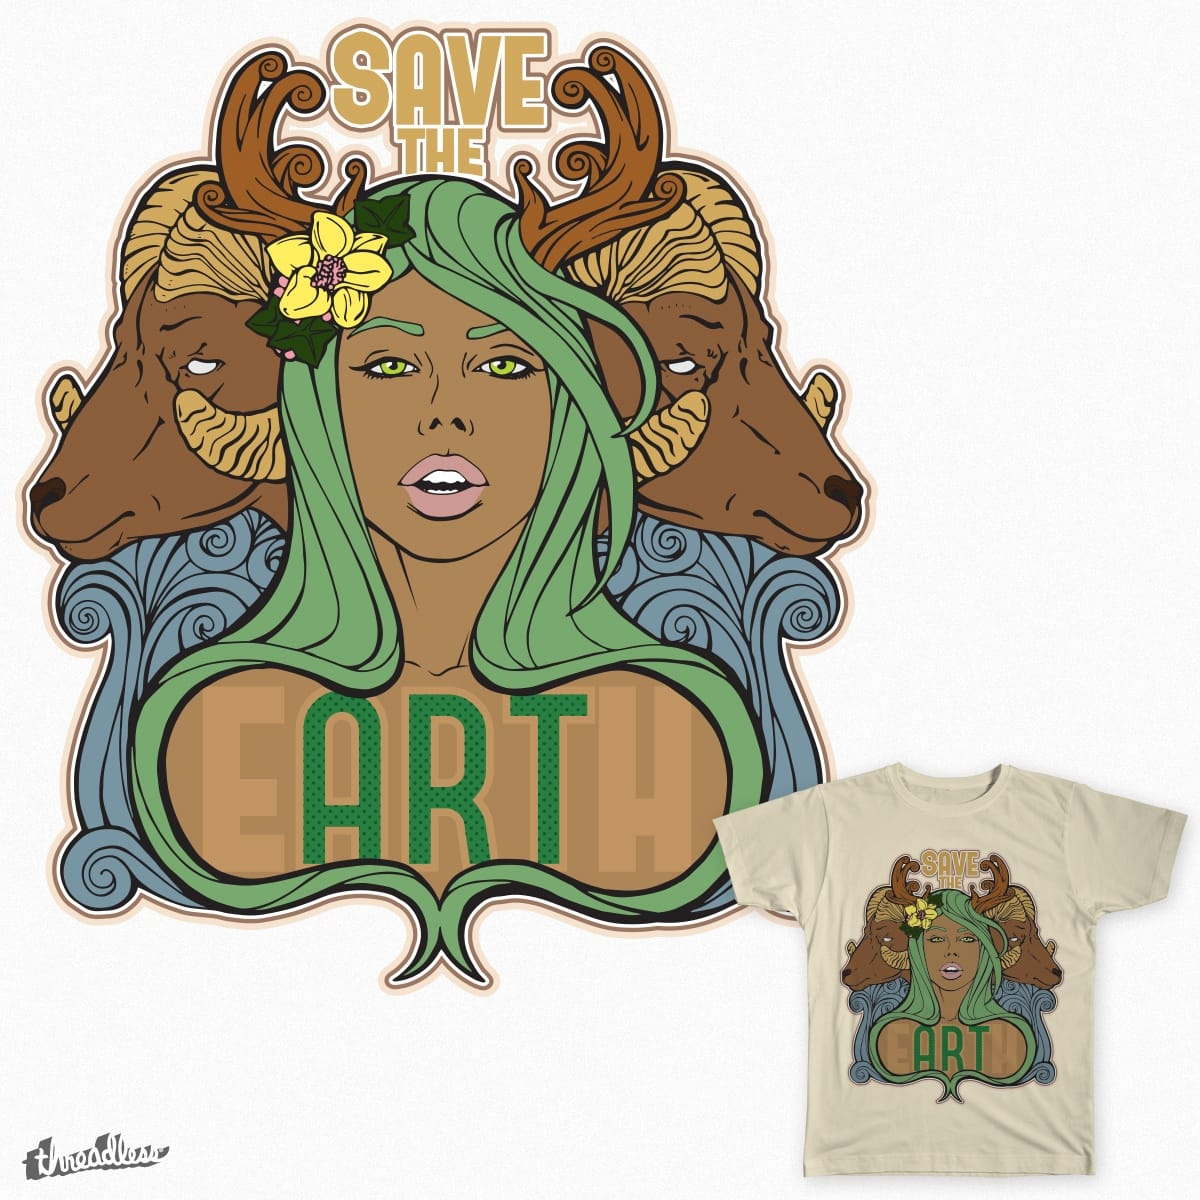 Save The eARTh by GeniusBeing on Threadless